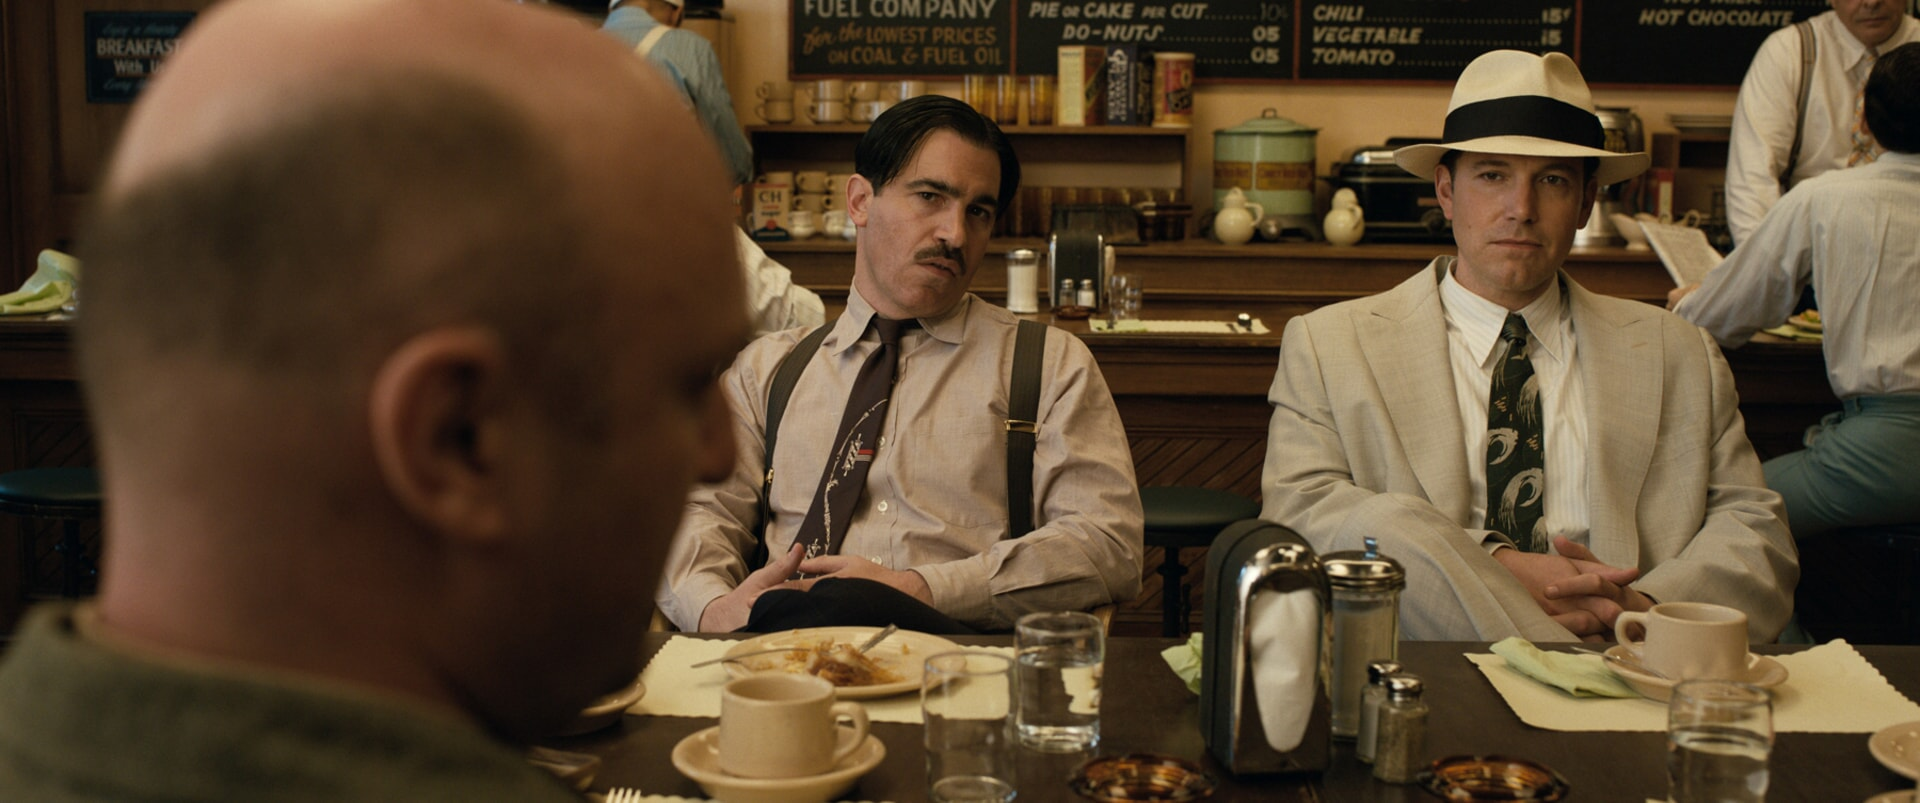 "CHRIS MESSINA as Dion Bartolo and BEN AFFLECK as Joe Coughlin in Warner Bros. Pictures' dramatic crime thriller ""LIVE BY NIGHT,"" a Warner Bros. Pictures release."